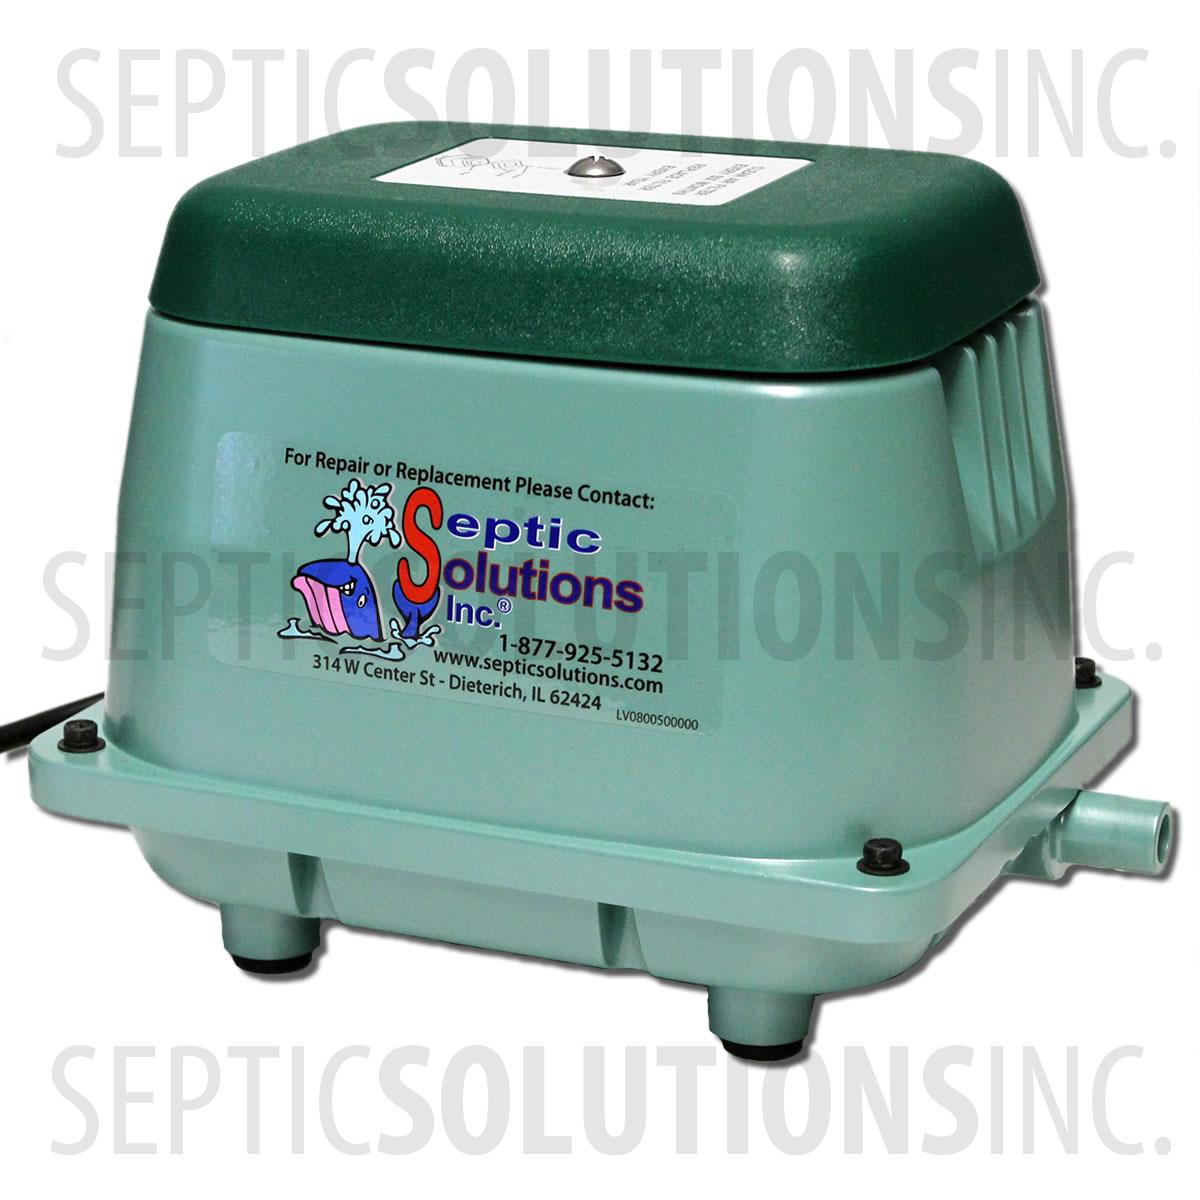 Hiblow Hp 60 Septic Solutions Septic Parts